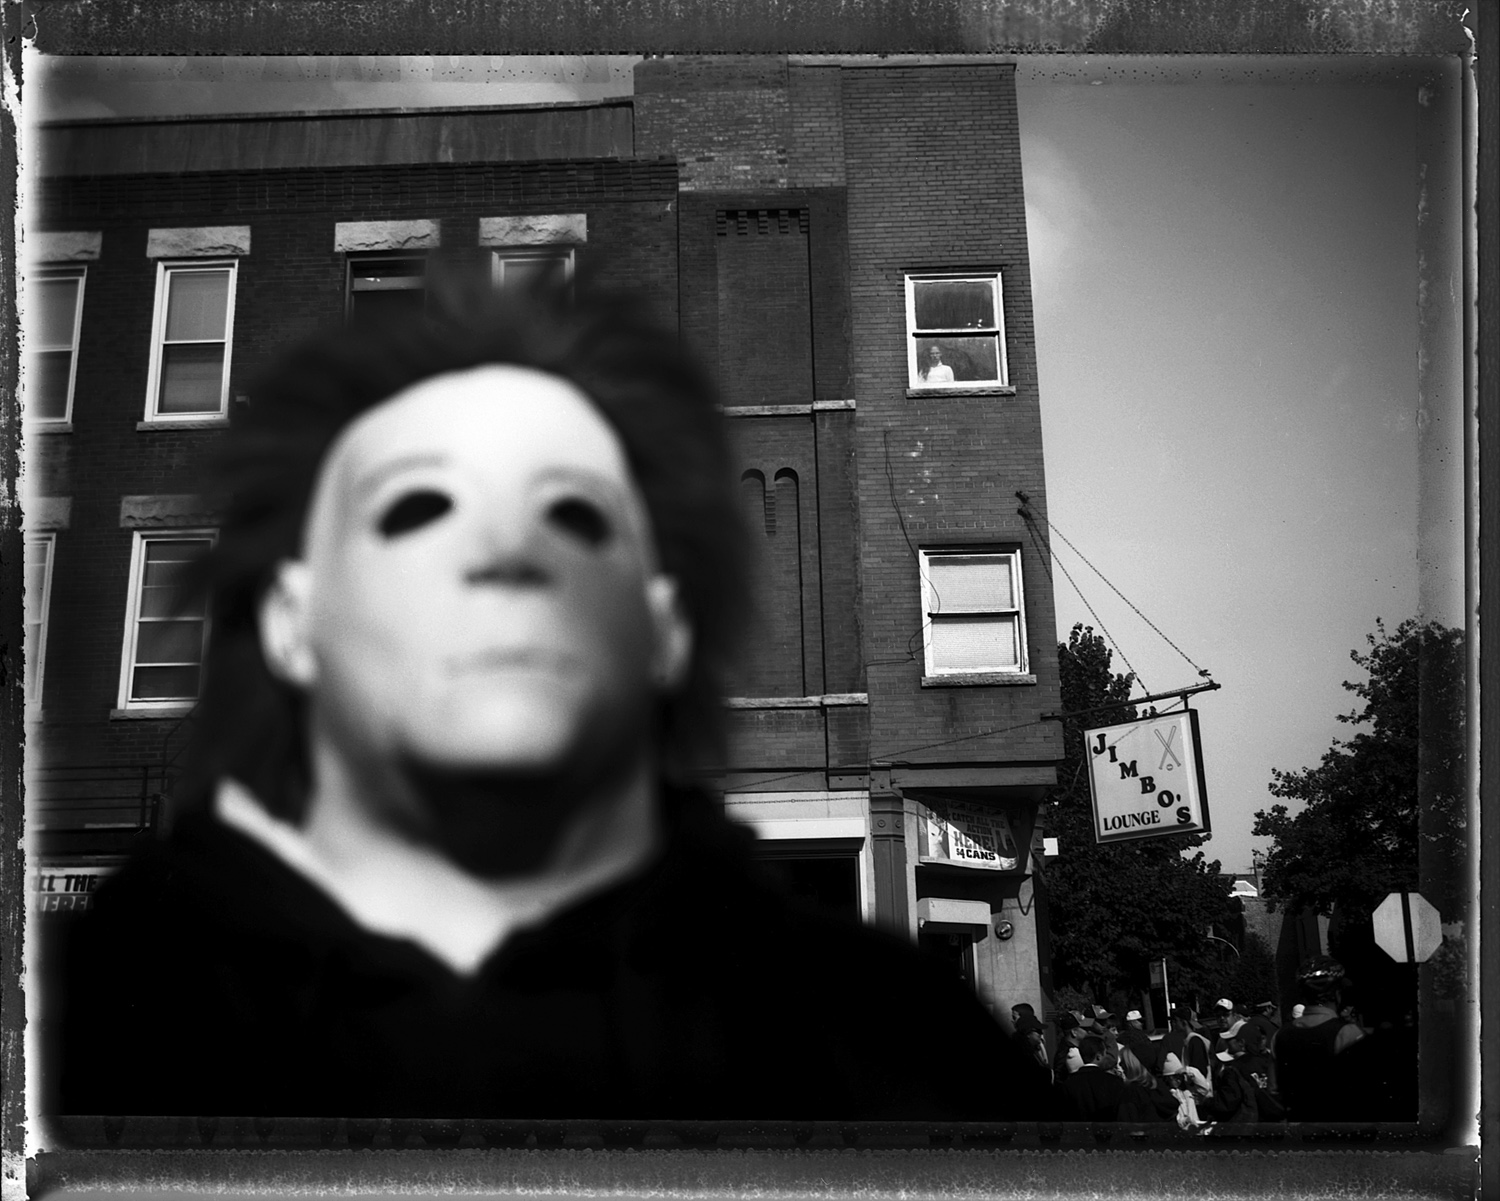 A man poses wearing his mask from the Friday the 13th movies. He stand in front of Jimbo's Bar, which was a local legendary establishment in the Bridgeport neighborhood. Bridgeport, home to Mayor Richard J. Daley, was known as one of the most brutally racist neighborhoods in the city and to this day has resisted integration by African-Americans, although many Asians and Latinos have moved into the neighborhood in the past few years.